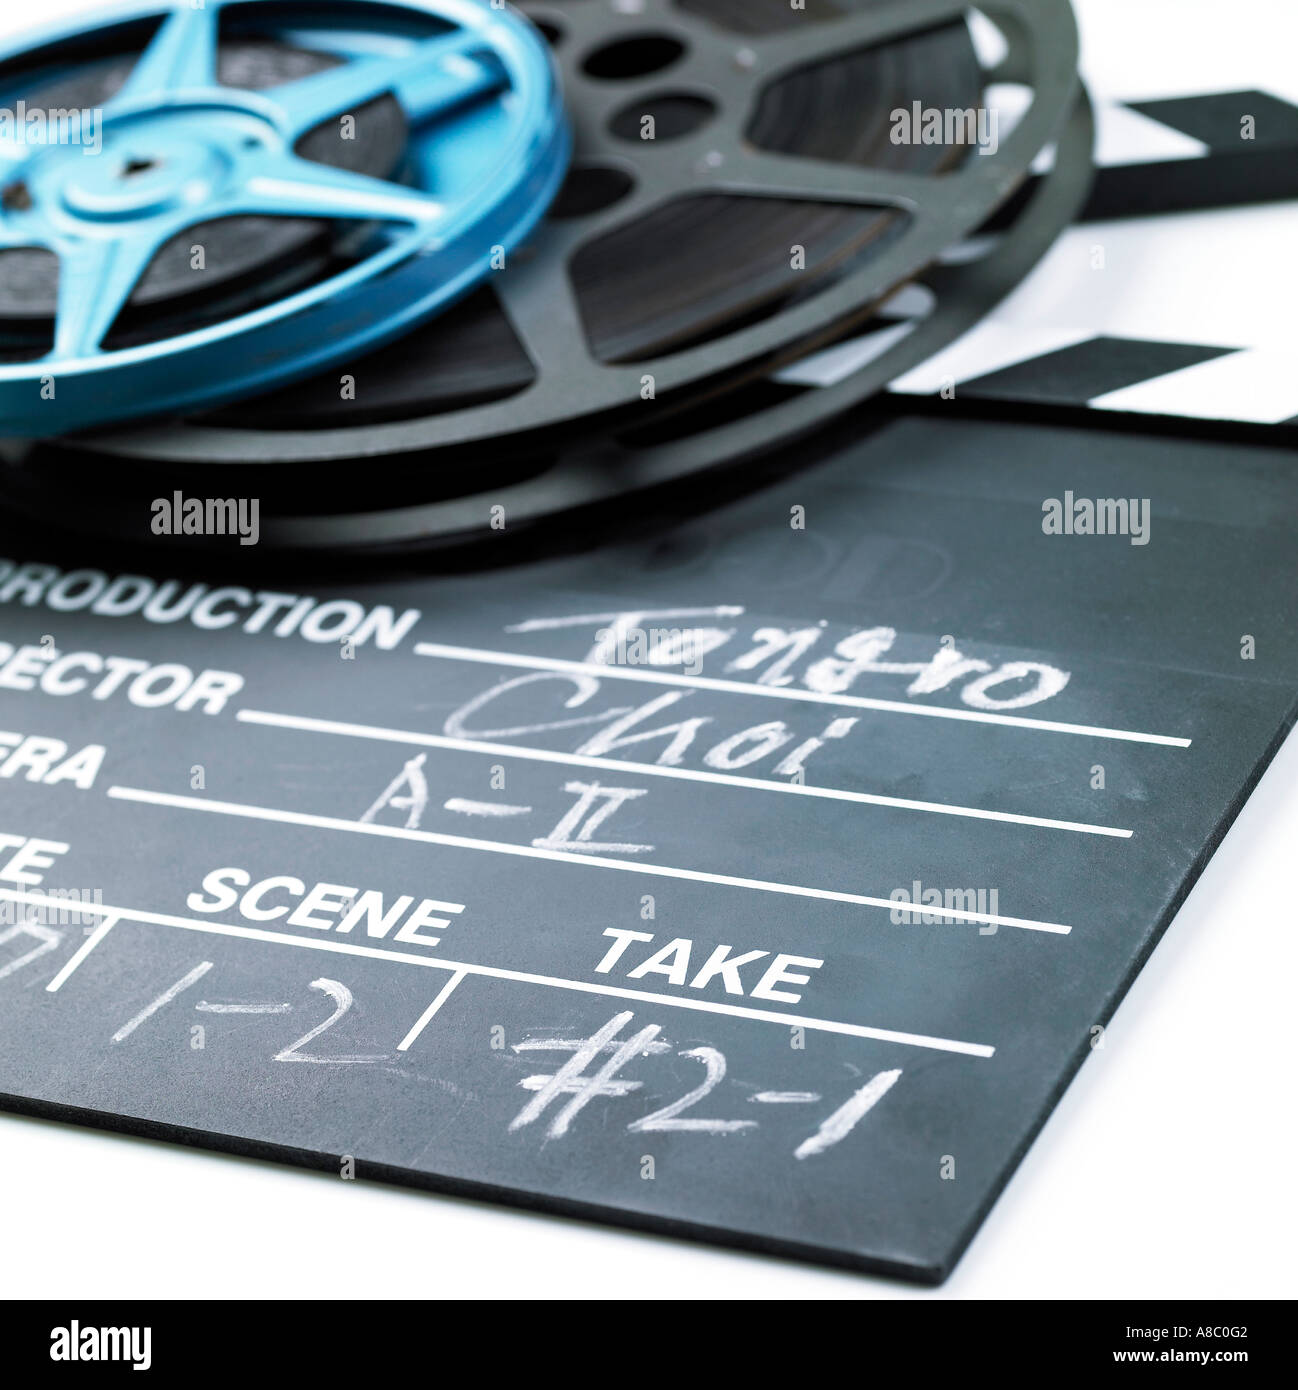 Image movie films and clapper board - Stock Image